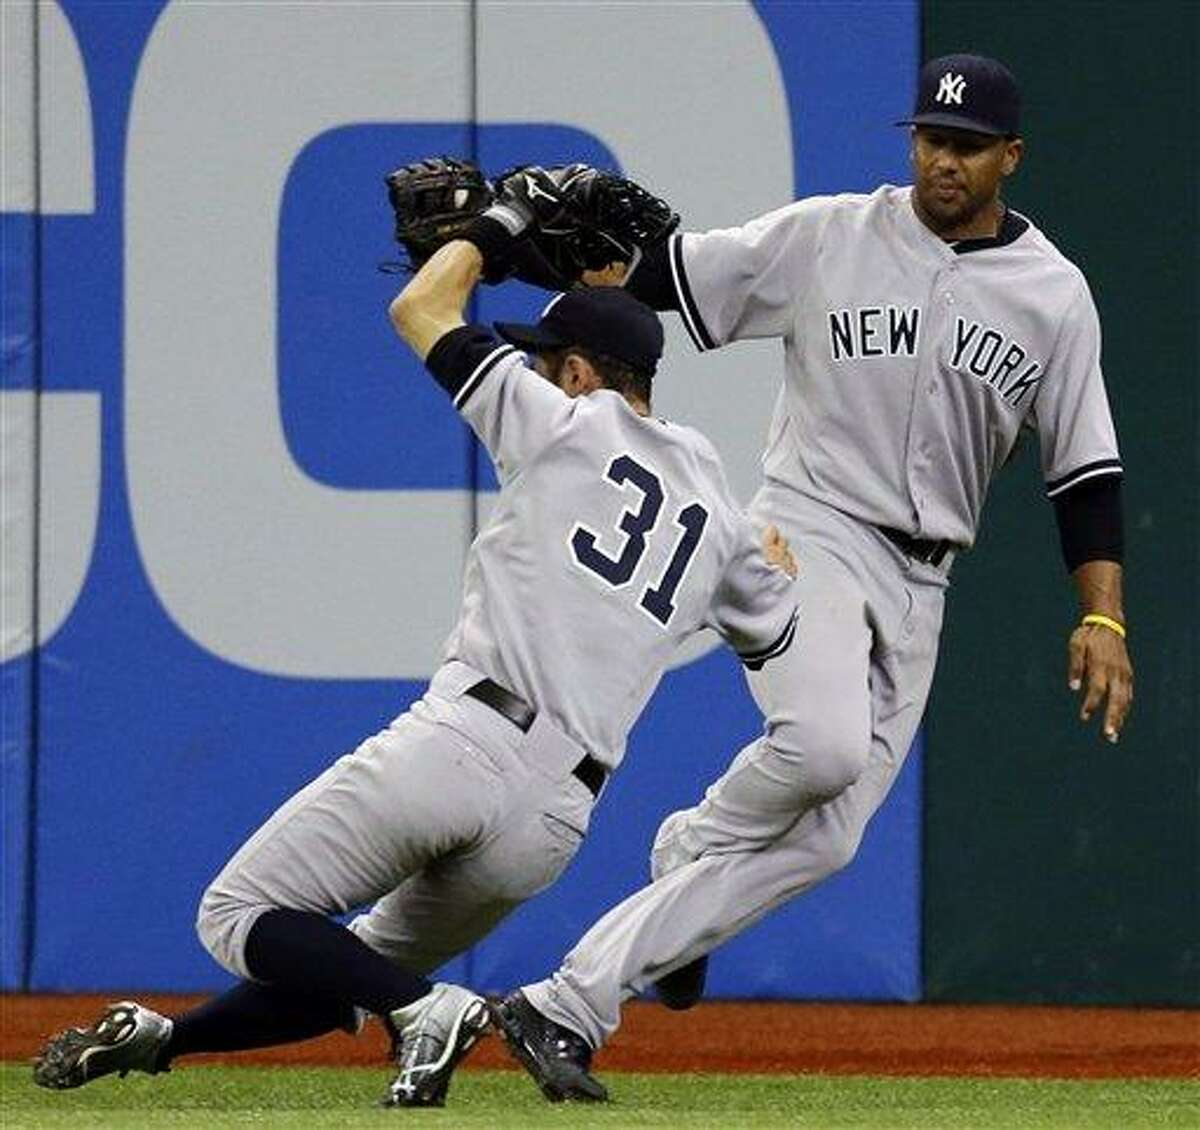 New York Yankees center fielder Chris Dickerson, right, and right fielder Ichiro Suzuki, of Japan, collide chasing an eighth-inning fly out by Tampa Bay Rays' Ben Francisco during a baseball game, Monday, Sept. 3, 2012, in St. Petersburg, Fla. Disckerson eventually made the catch. The Rays won 4-3. (AP Photo/Chris O'Meara)